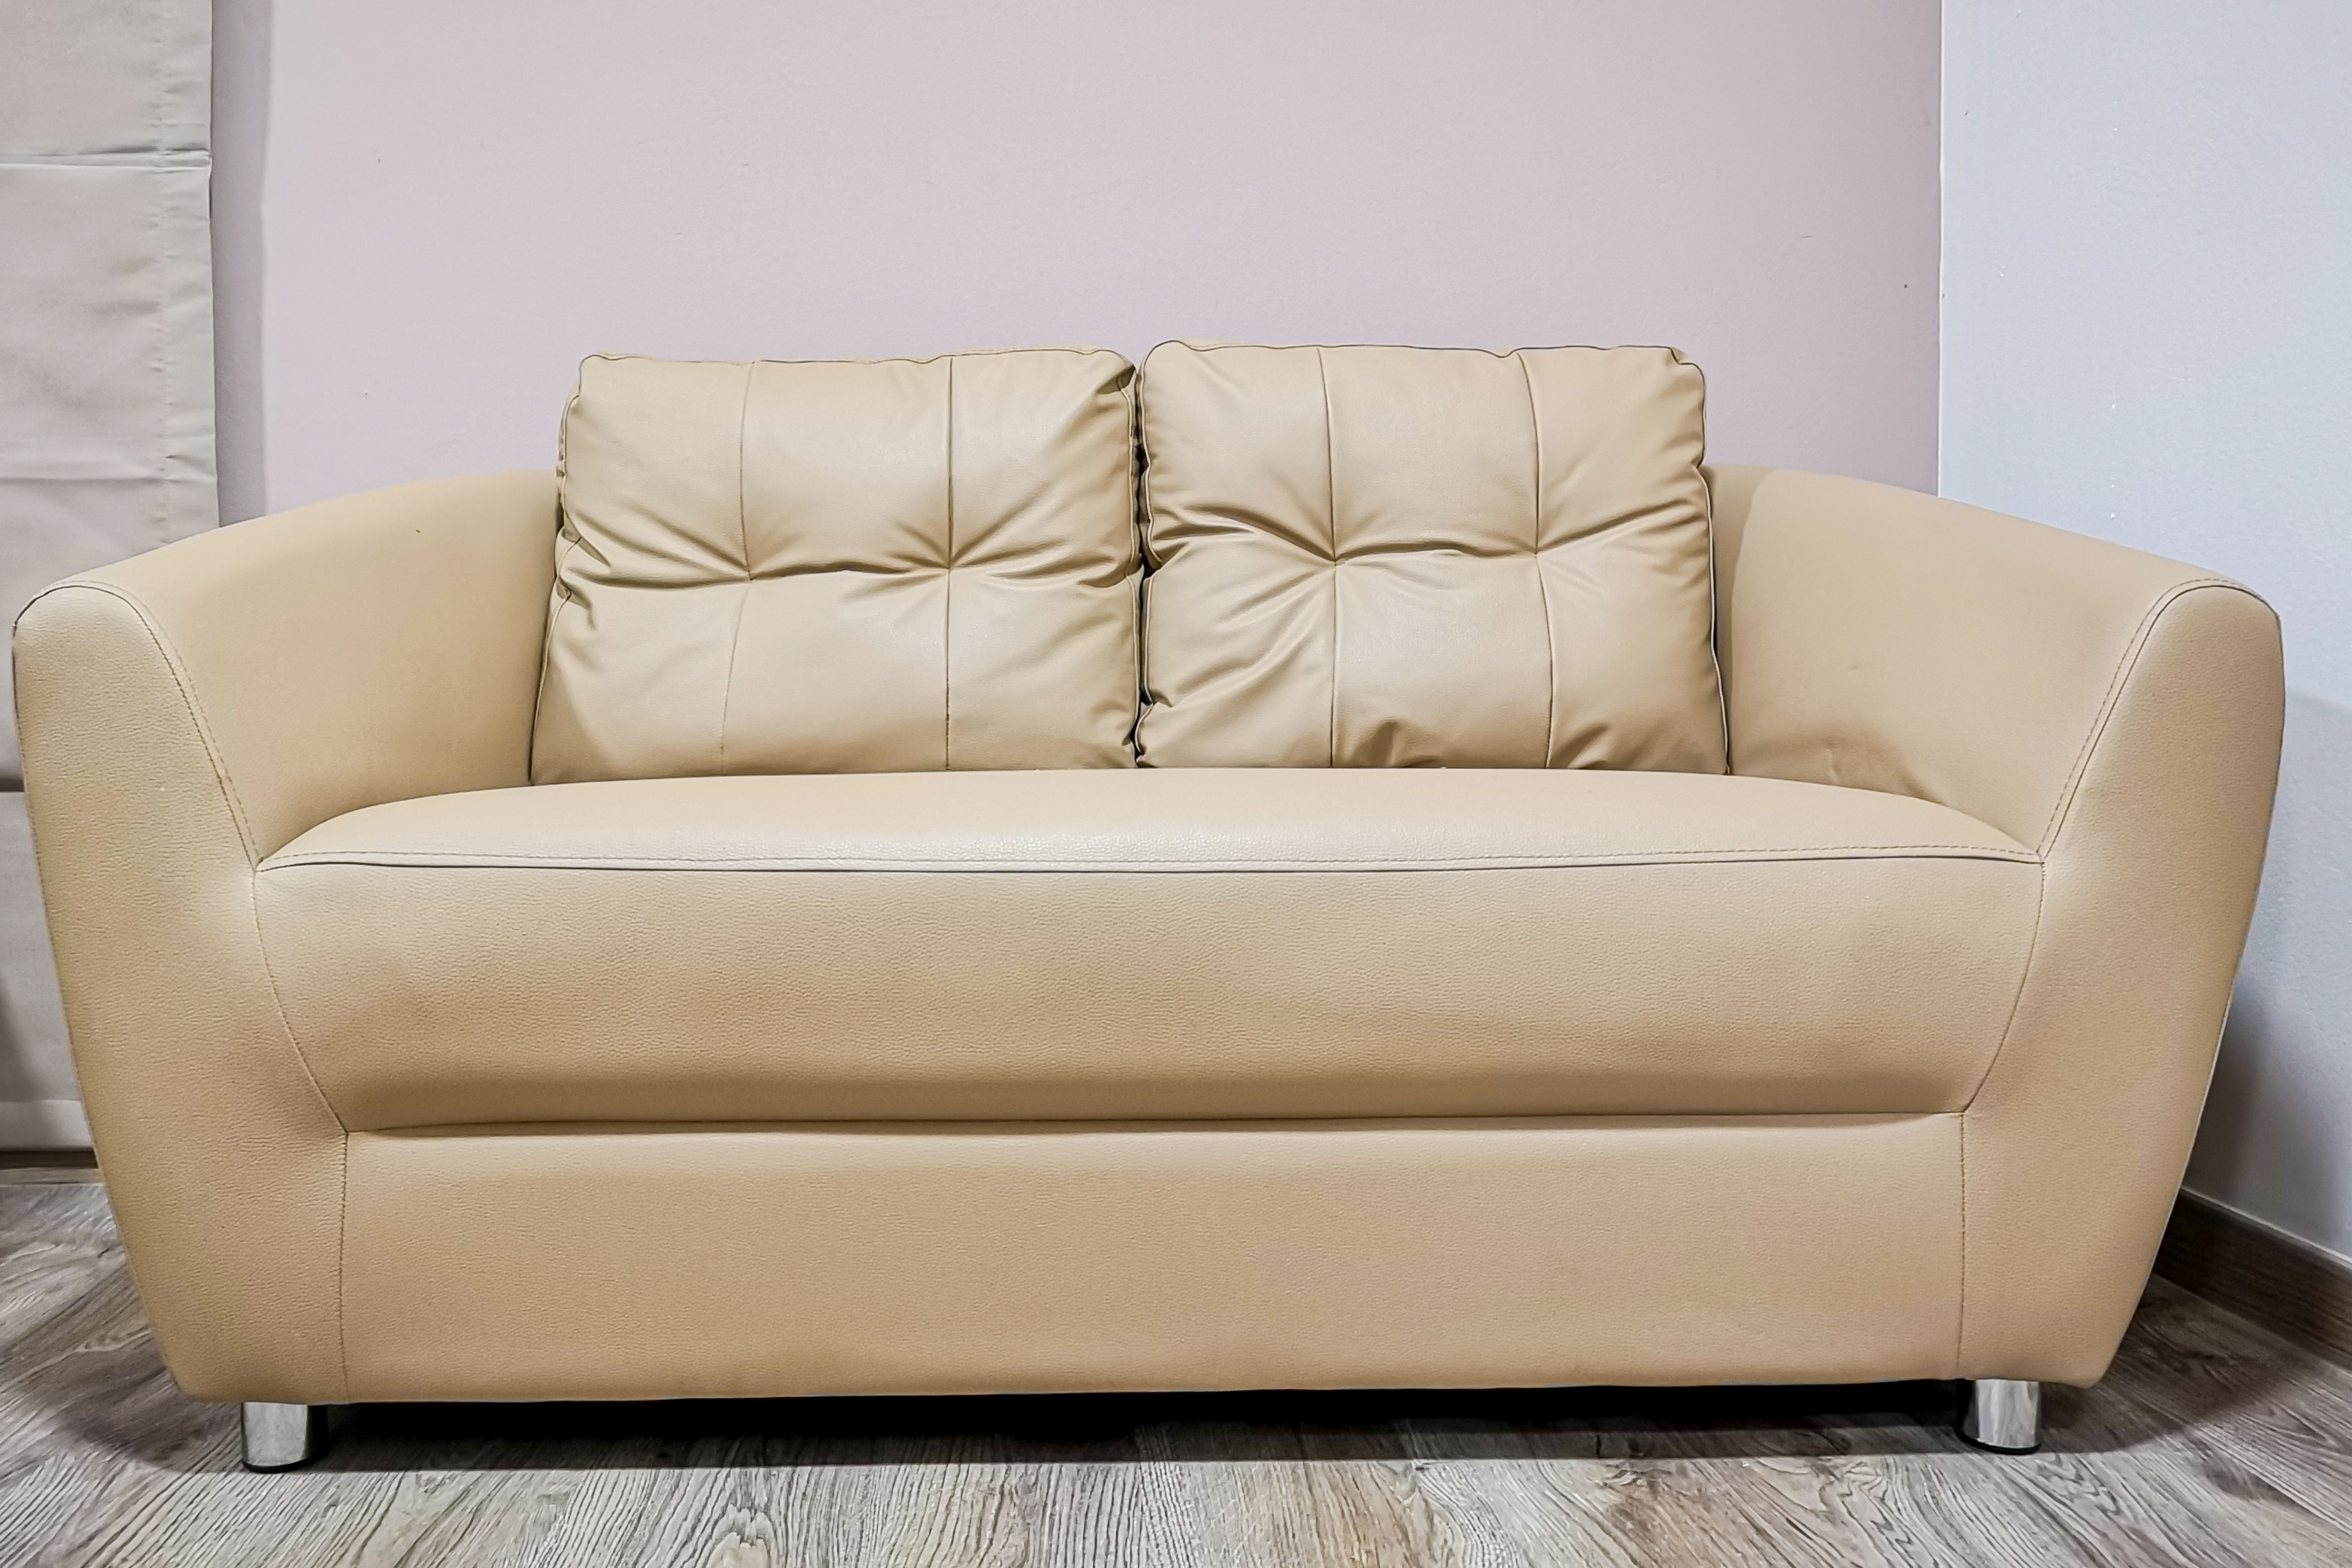 How to Ensure You Are Actually Cleaning Polyurethane